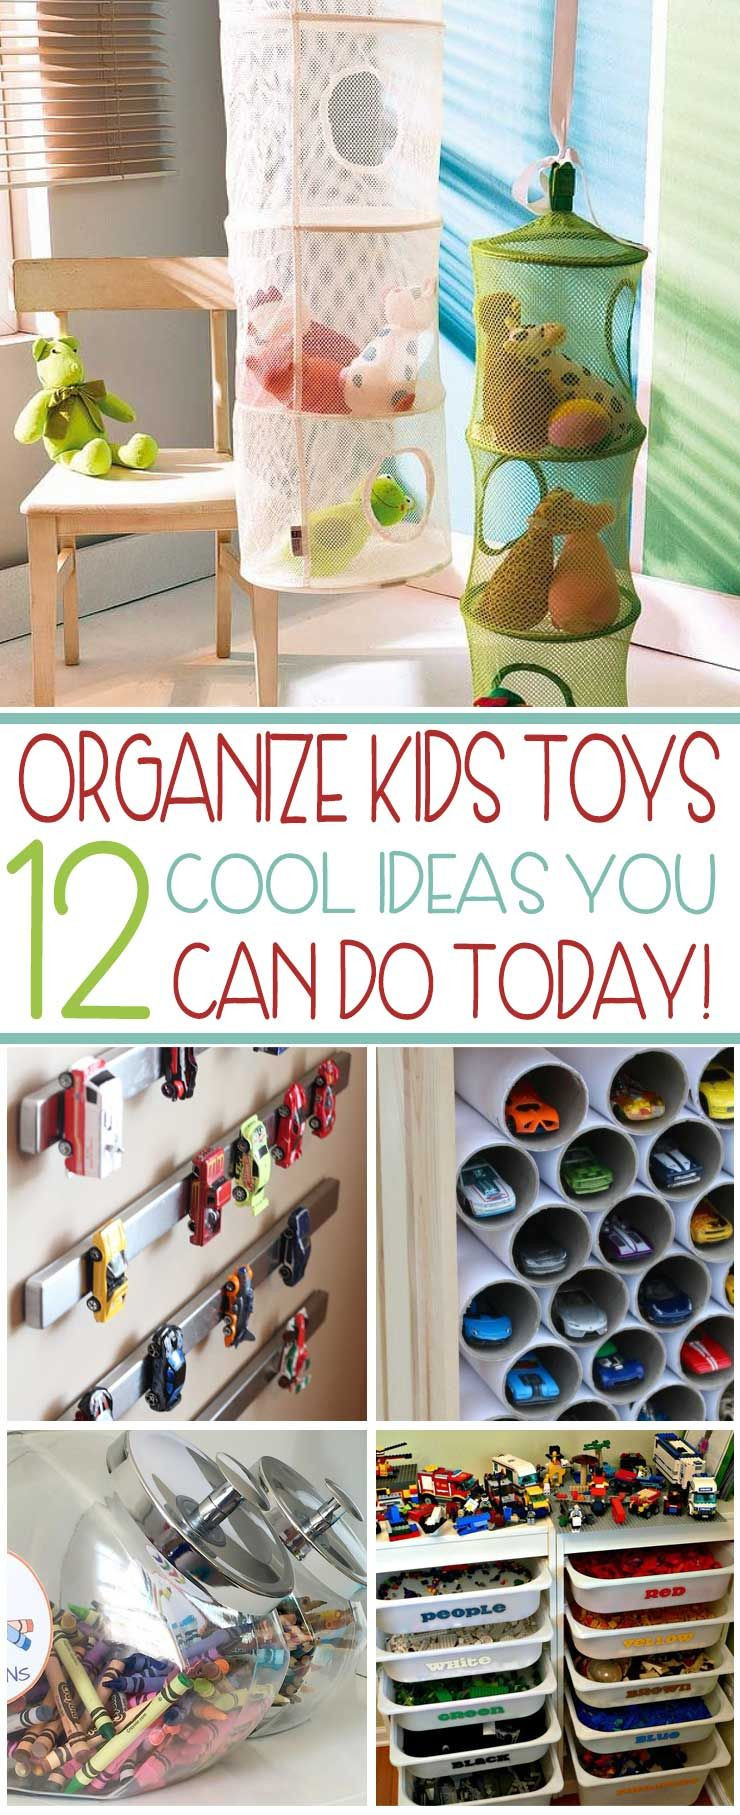 Kids Toy Organizing Ideas  Organize Your Kids Toys TODAY With These 12 Cool Ideas